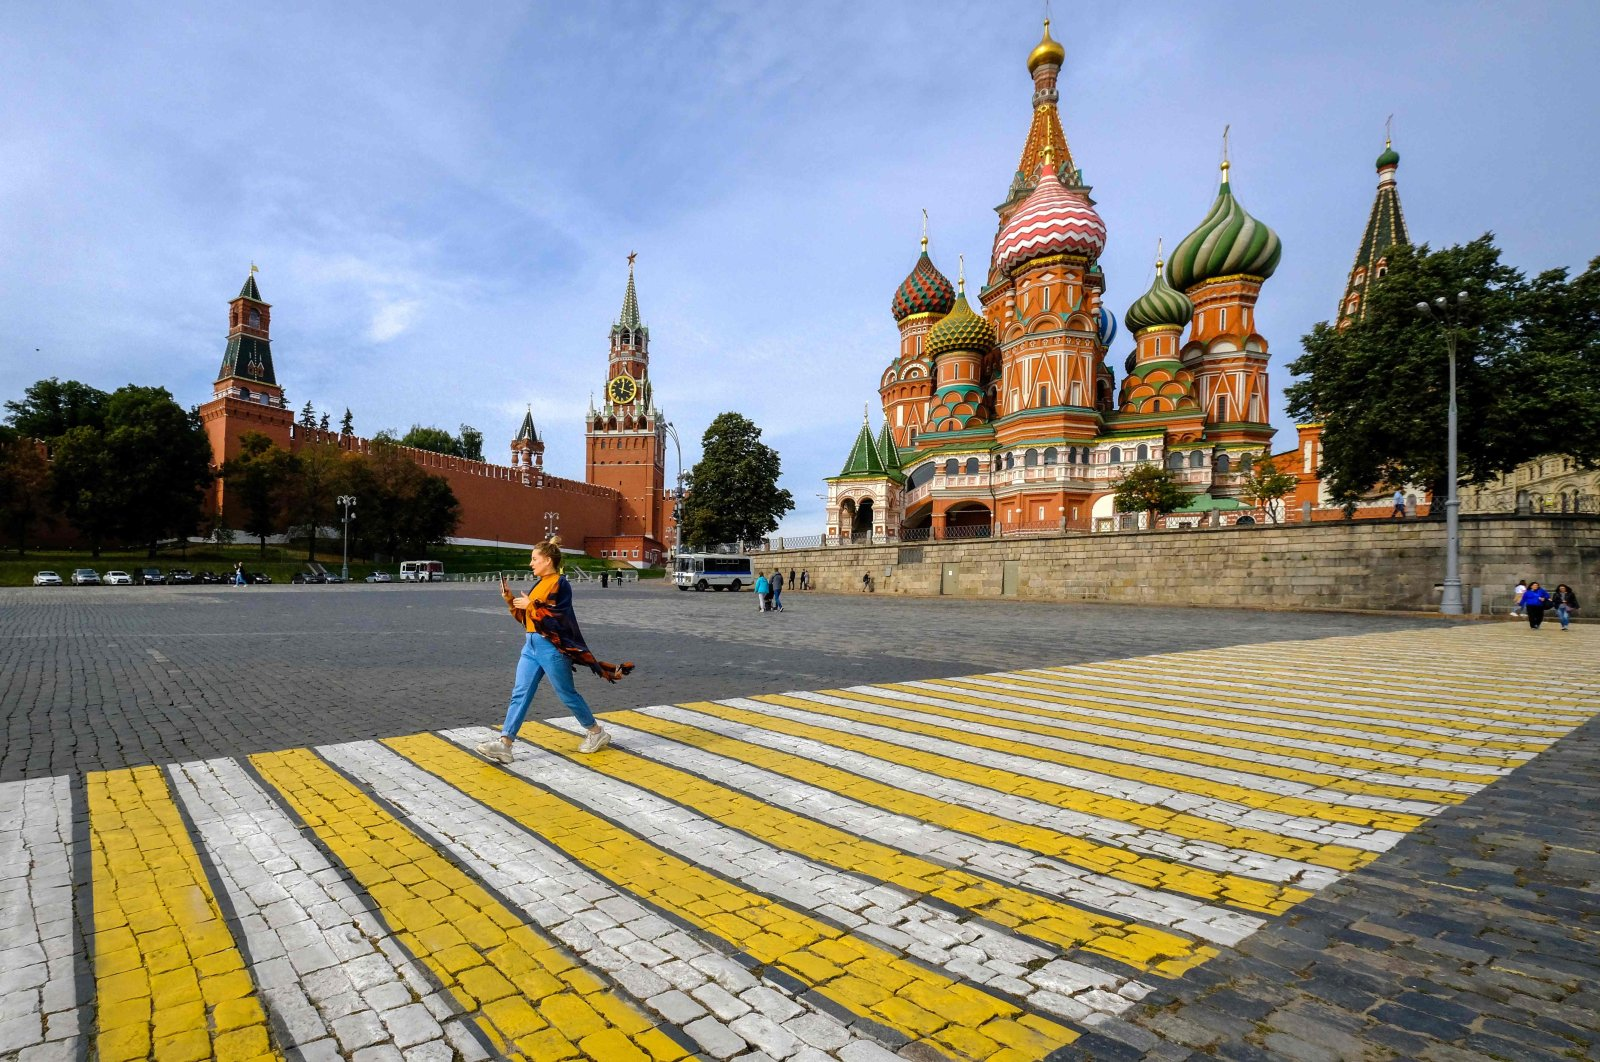 A woman walks along a crosswalk near St. Basil's Cathedral in central Moscow, Sept. 17, 2020. (AFP Photo)